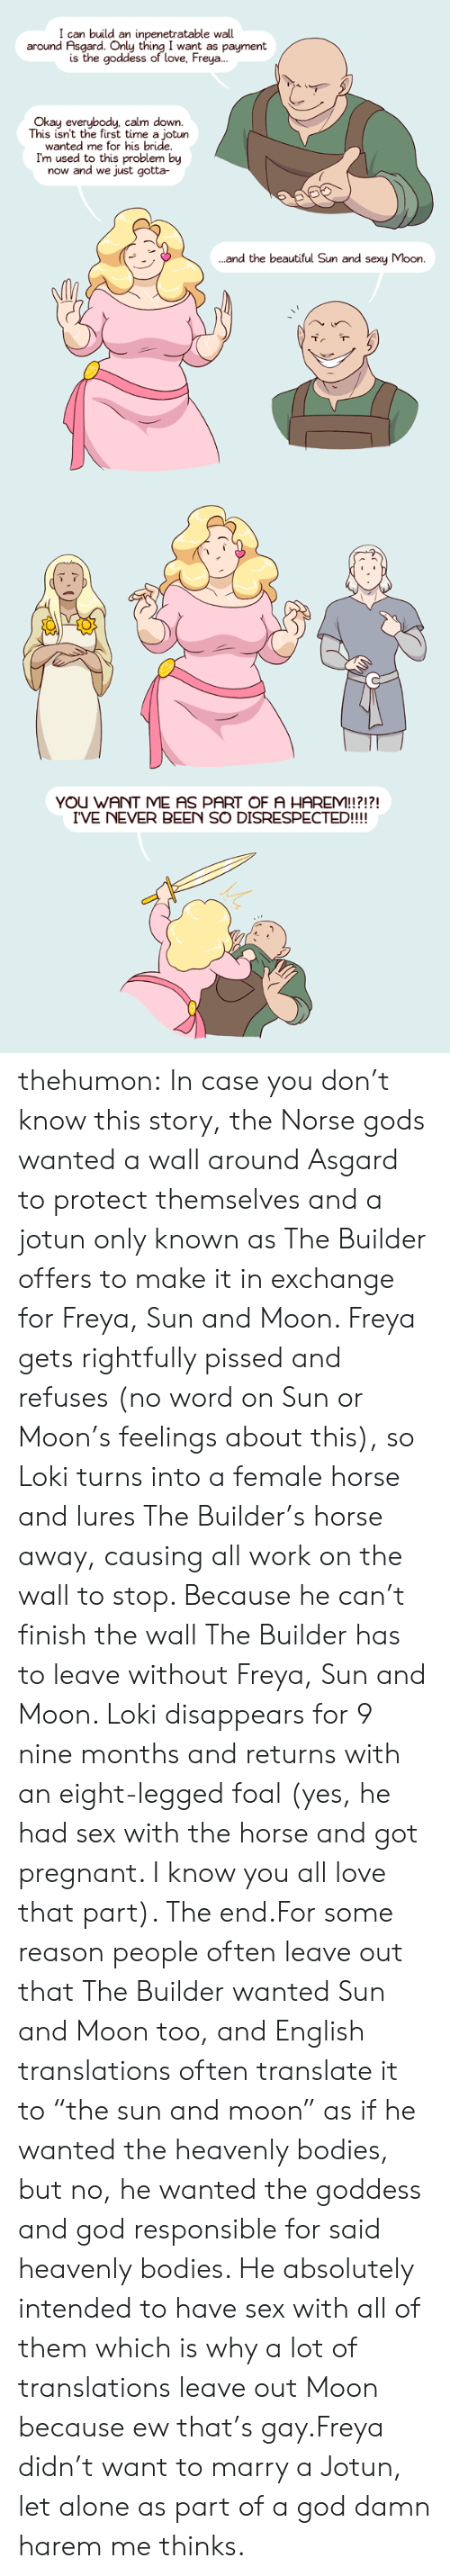 """freya: I can build an inpenetratable wall  around Asgard. Only thing I want as payment  is the goddess of love, Freya..  Okay everybody, calm down.  This isn't the first time a jotun  wanted me for his bride  I'm used to this problem by  now and we just gotta-  and the beautiful Sun and sexy Moon.   YOU WANT ME AS PART OF A HAREM!!?!?!  I'VE NEVER BEEN SO DISRESPECTED!!!! thehumon:  In case you don't know this story, the Norse gods wanted a wall around Asgard to protect themselves and a jotun only known as The Builder offers to make it in exchange for Freya, Sun and Moon. Freya gets rightfully pissed and refuses (no word on Sun or Moon's feelings about this), so Loki turns into a female horse and lures The Builder's horse away, causing all work on the wall to stop. Because he can't finish the wall The Builder has to leave without Freya, Sun and Moon. Loki disappears for 9 nine months and returns with an eight-legged foal (yes, he had sex with the horse and got pregnant. I know you all love that part). The end.For some reason people often leave out that The Builder wanted Sun and Moon too, and English translations often translate it to """"the sun and moon"""" as if he wanted the heavenly bodies, but no, he wanted the goddess and god responsible for said heavenly bodies. He absolutely intended to have sex with all of them which is why a lot of translations leave out Moon because ew that's gay.Freya didn't want to marry a Jotun, let alone as part of a god damn harem me thinks."""